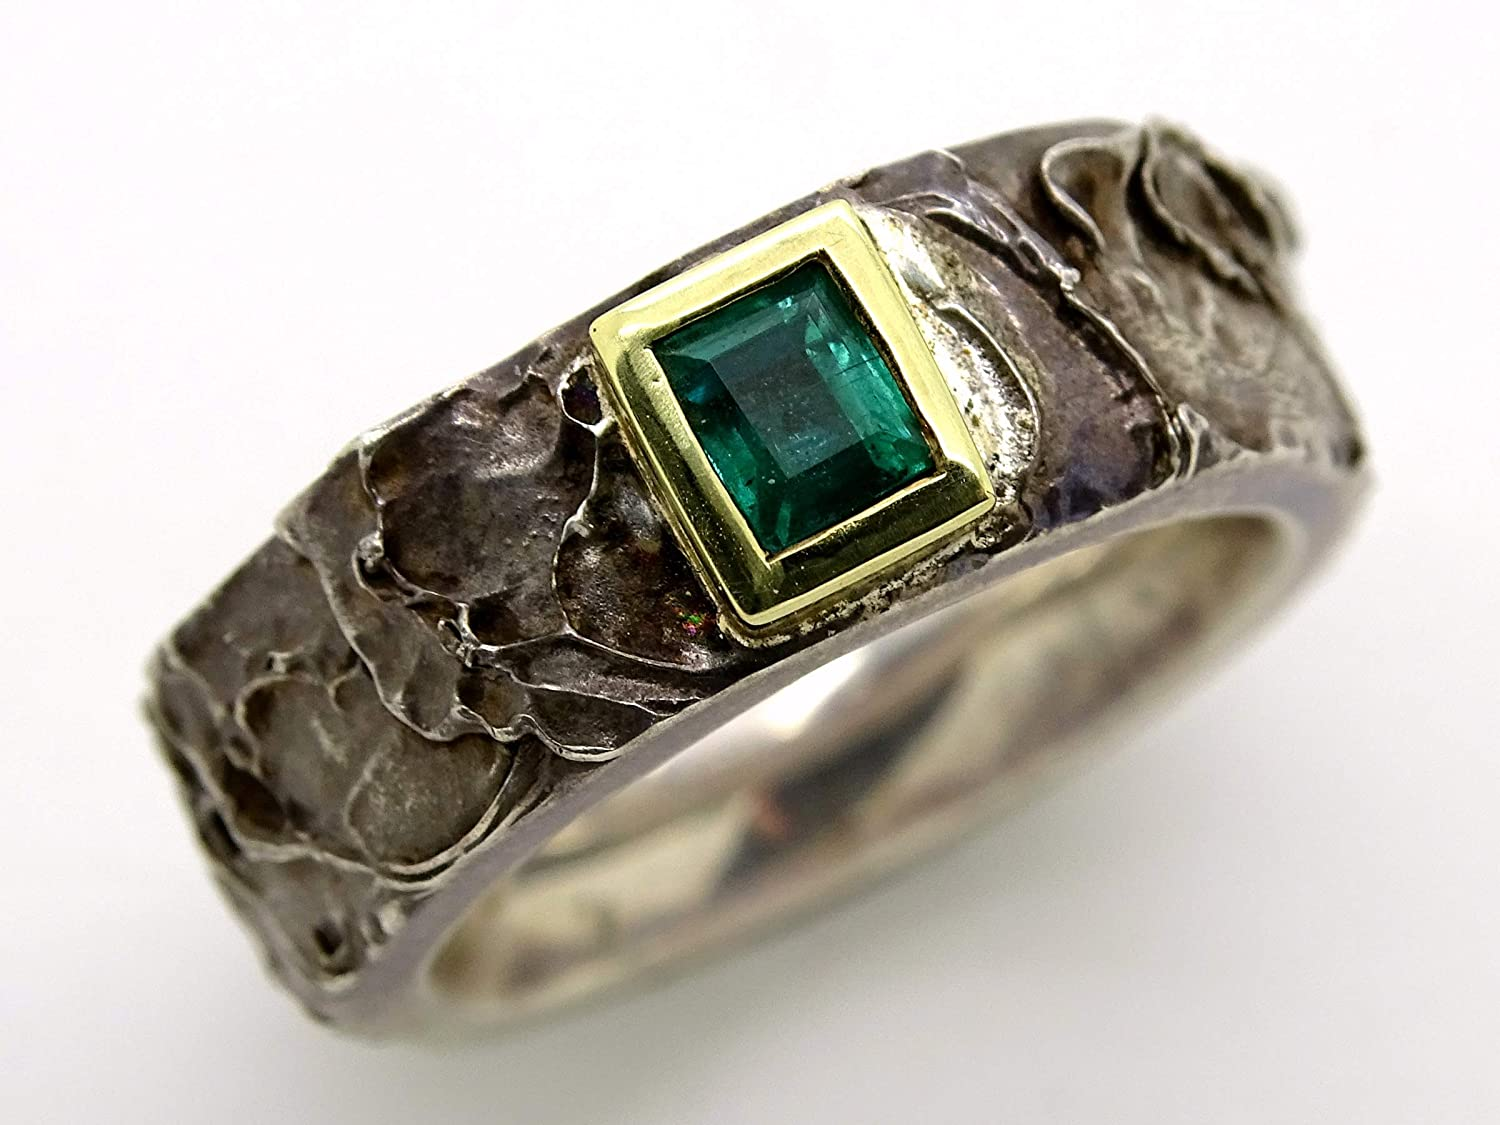 It is a graphic of Amazon.com: mens emerald ring gold silver, celtic wedding ring for